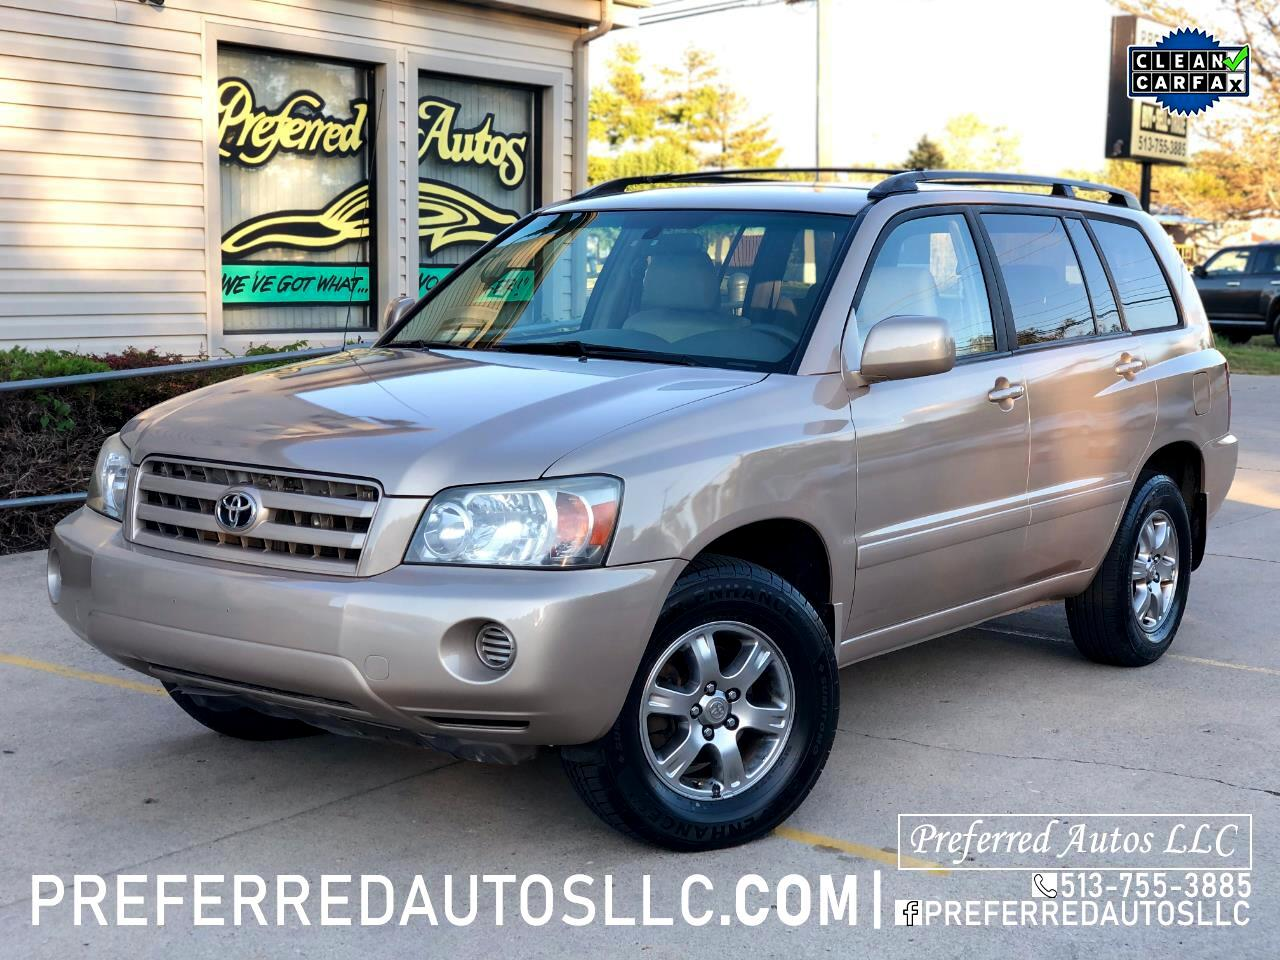 Toyota Highlander V6 4WD with Third Row Seat 2006